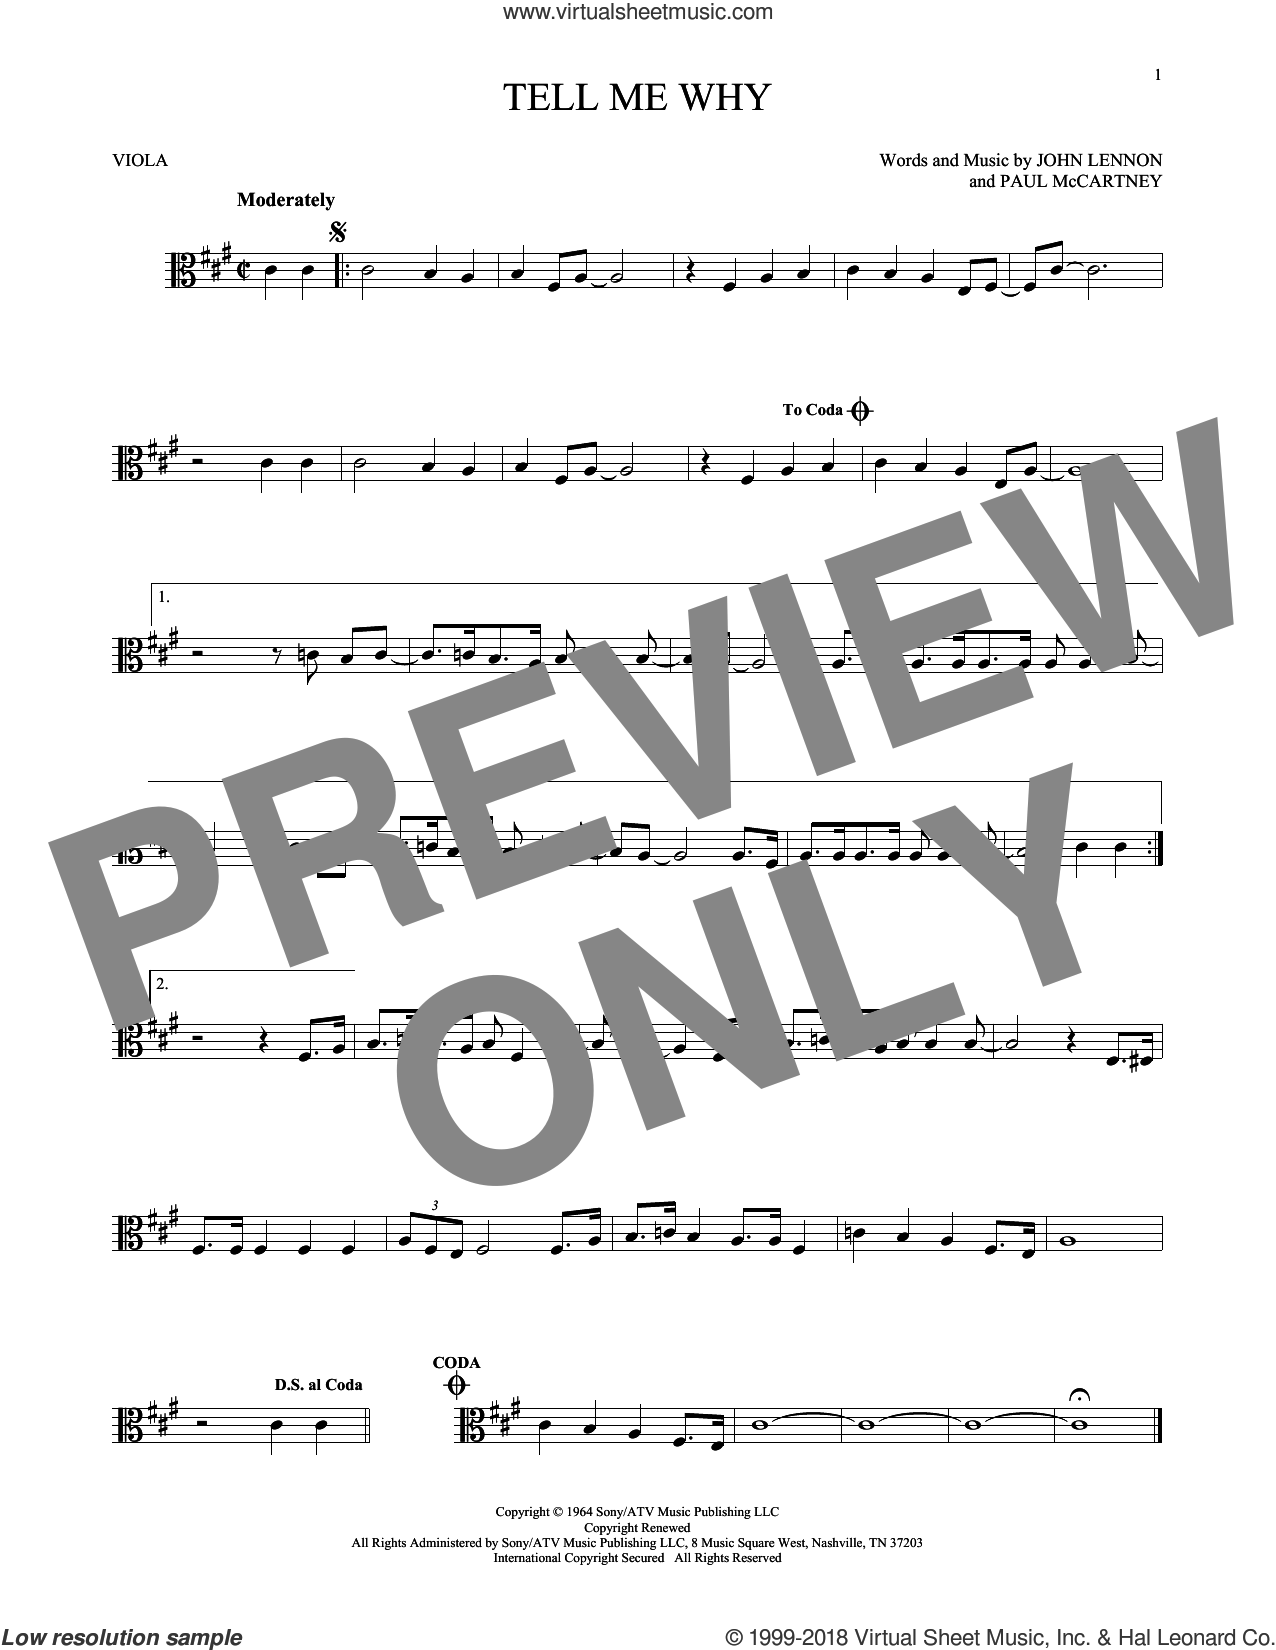 Tell Me Why sheet music for viola solo by The Beatles, John Lennon and Paul McCartney, intermediate skill level